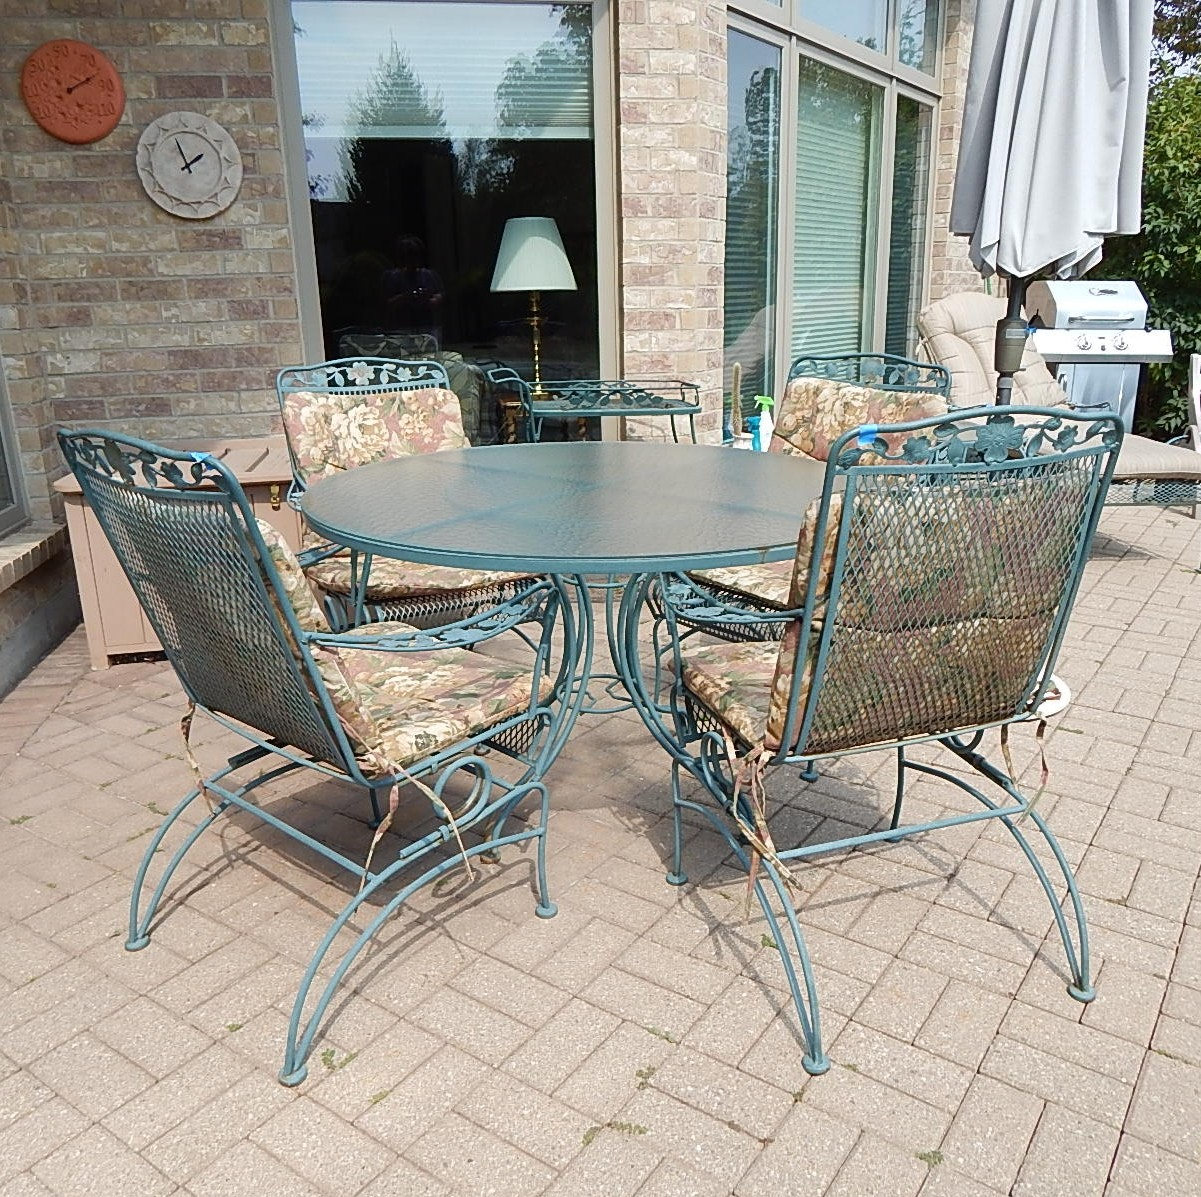 Patio Table and Four Chairs, Cart, Umbrella